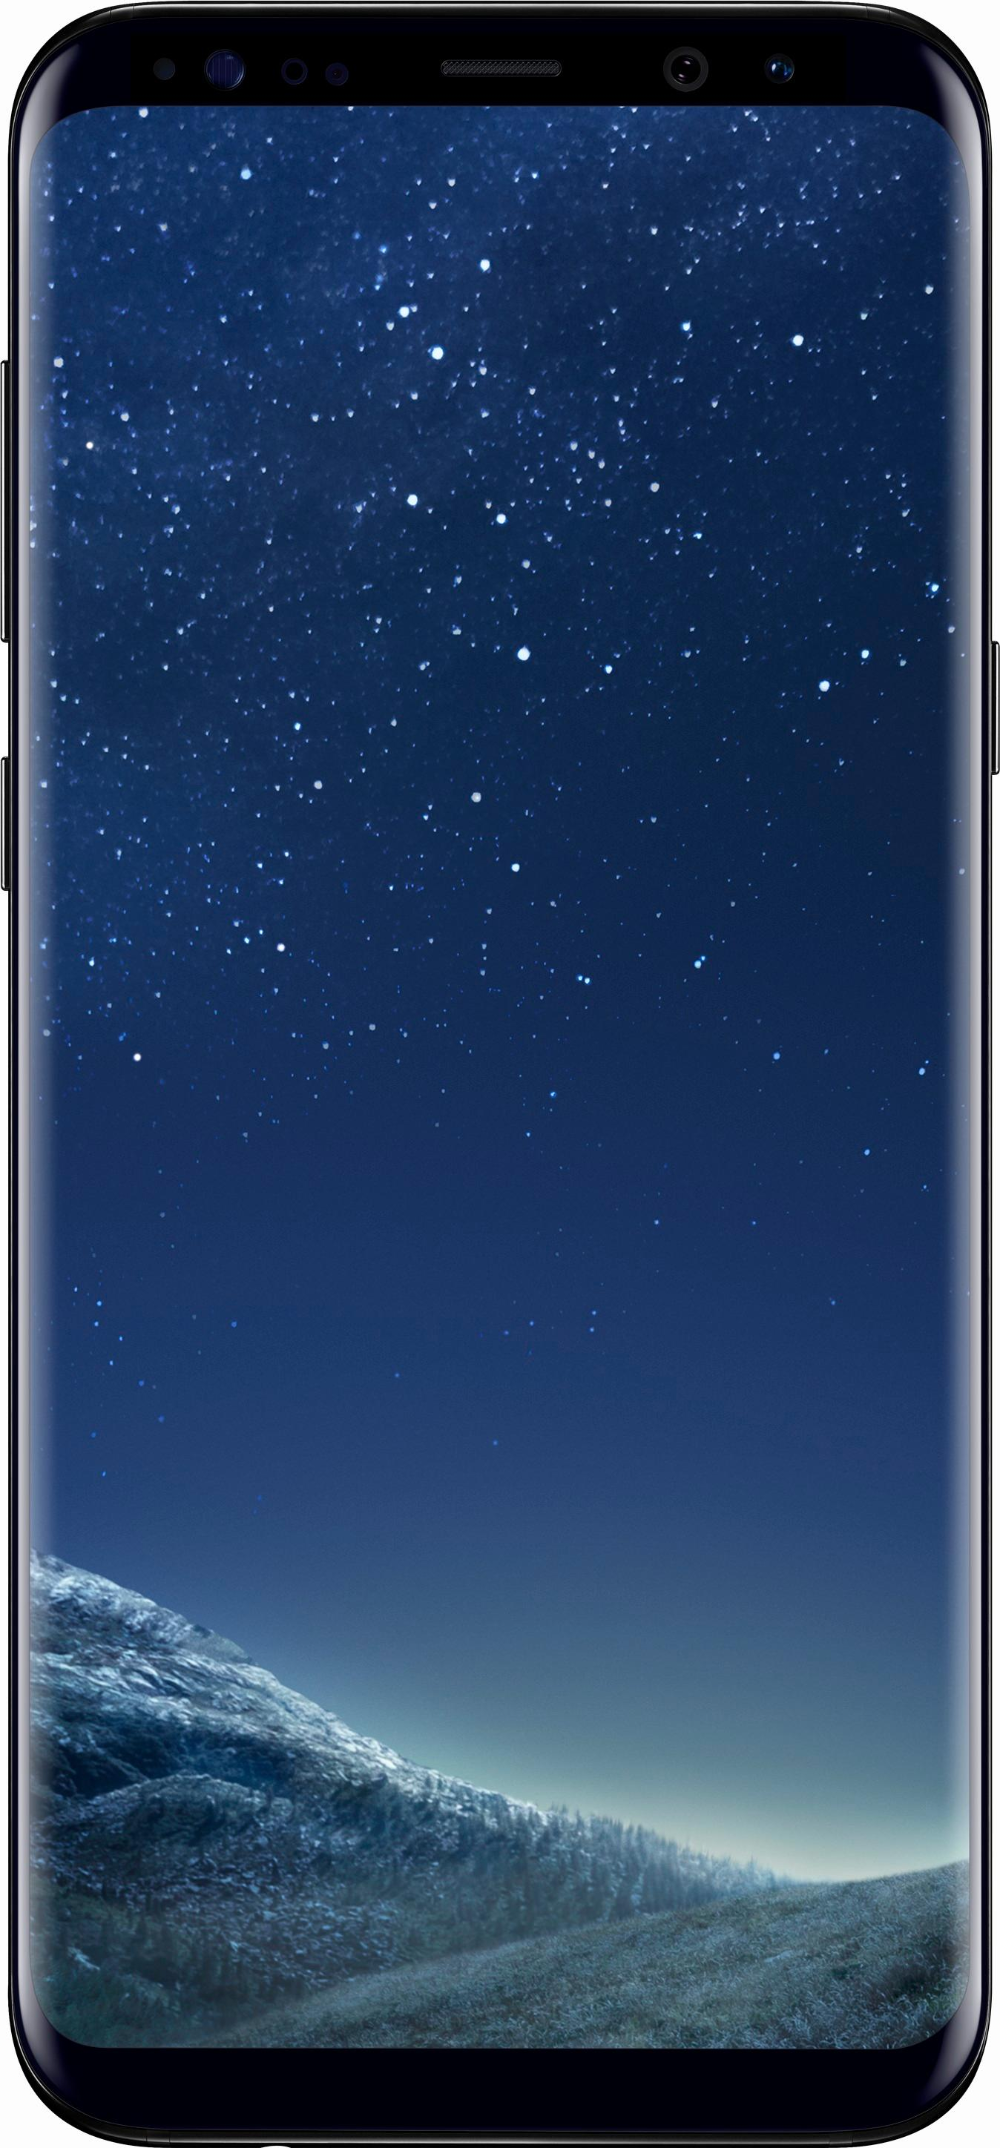 Total Wireless Samsung Galaxy S8 Plus 4g With 64gb Memory Prepaid Cell Phone Midnight Black Twsag955ucp Best Buy Galaxy S8 Wallpaper Samsung S8 Wallpaper Samsung Galaxy S8 Wallpapers